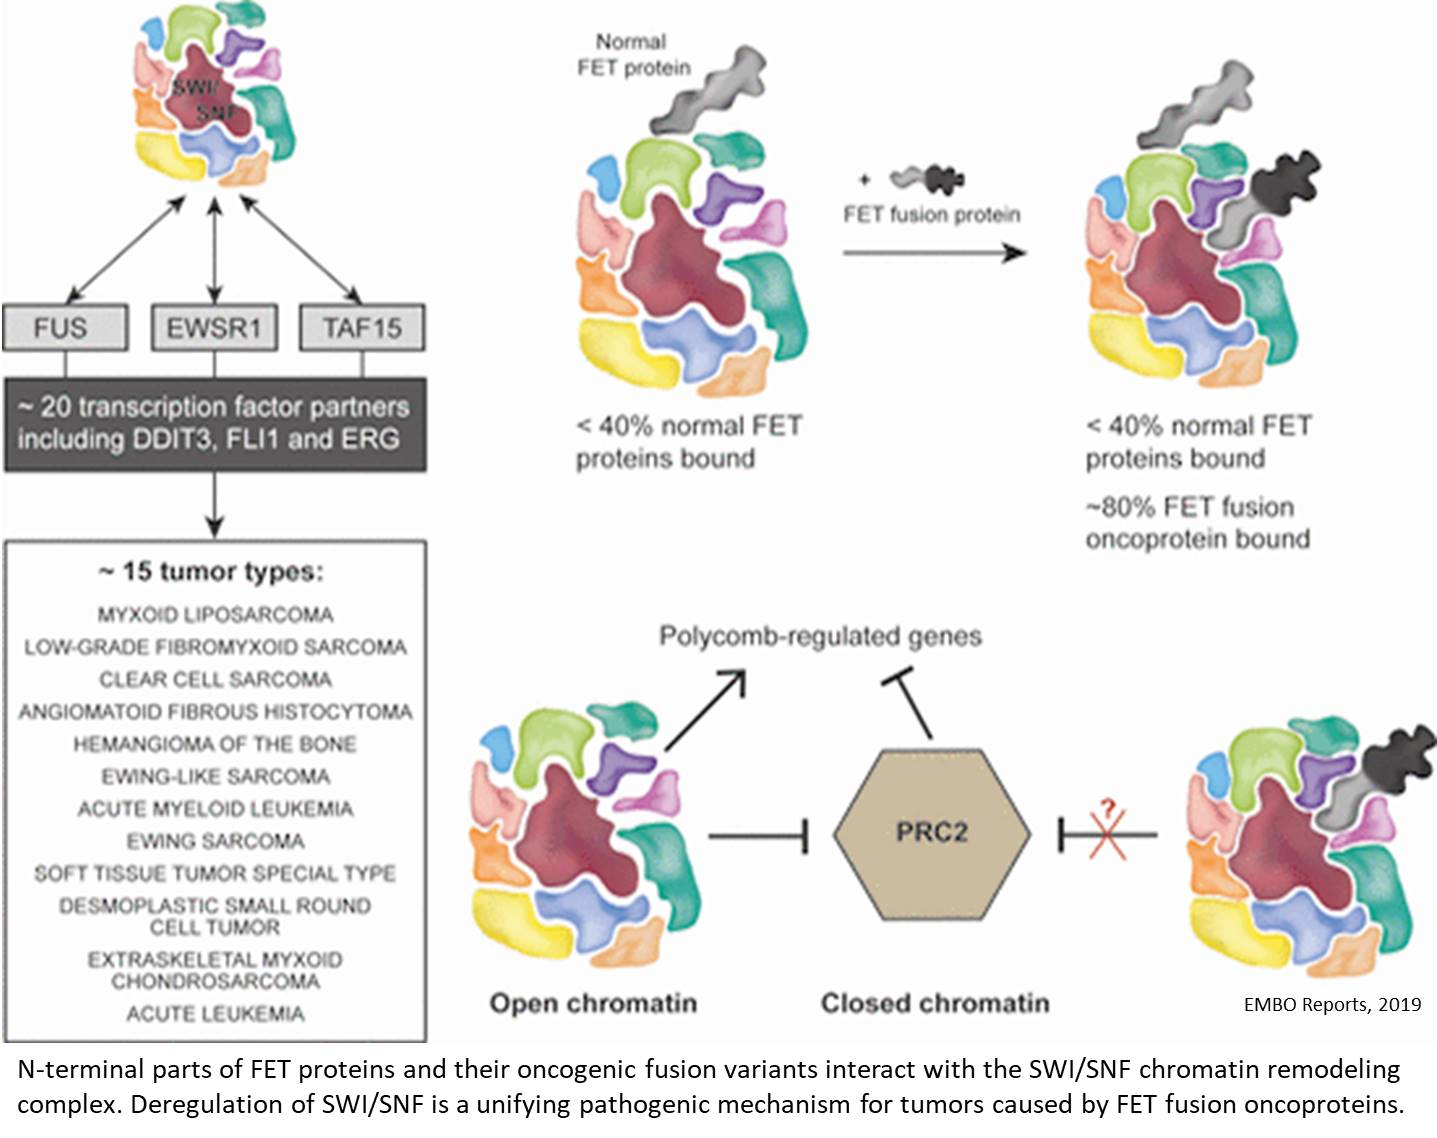 Dysregulation of chromatin remodeling complex by fusion oncoproteins in sarcomas